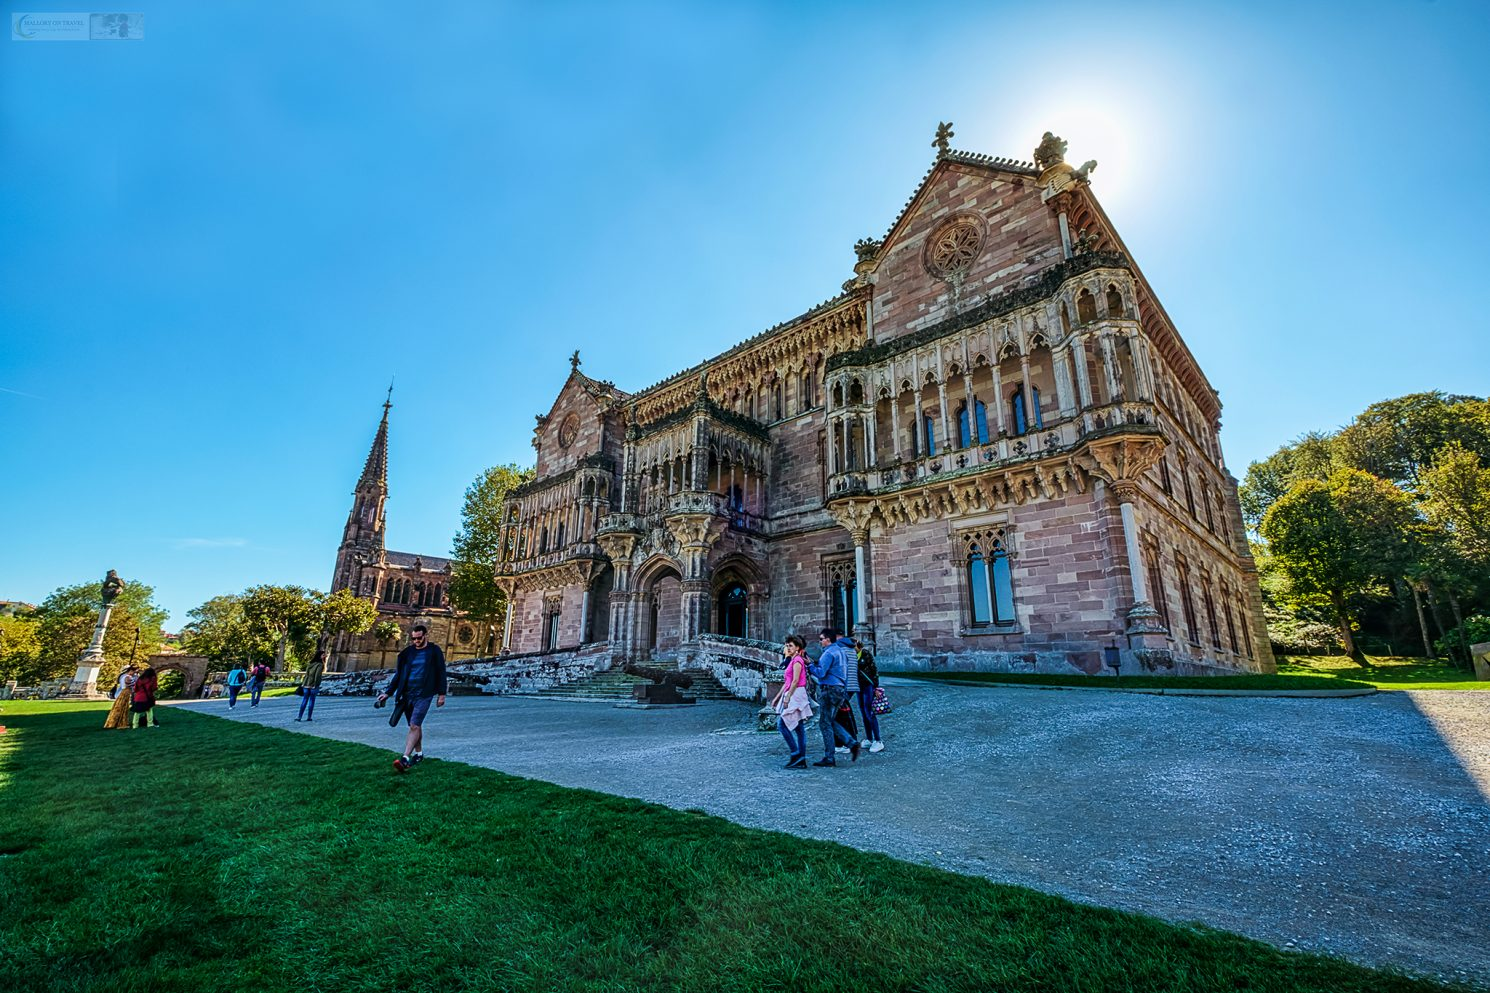 The Pantheon Chapel and Palacio de Sobrellano, which comprise the Ensemble of Sobrellano in the Cantabria town of Comillas in Green Spain on Mallory on Travel adventure travel, photography, travel Iain Mallory_spain-24